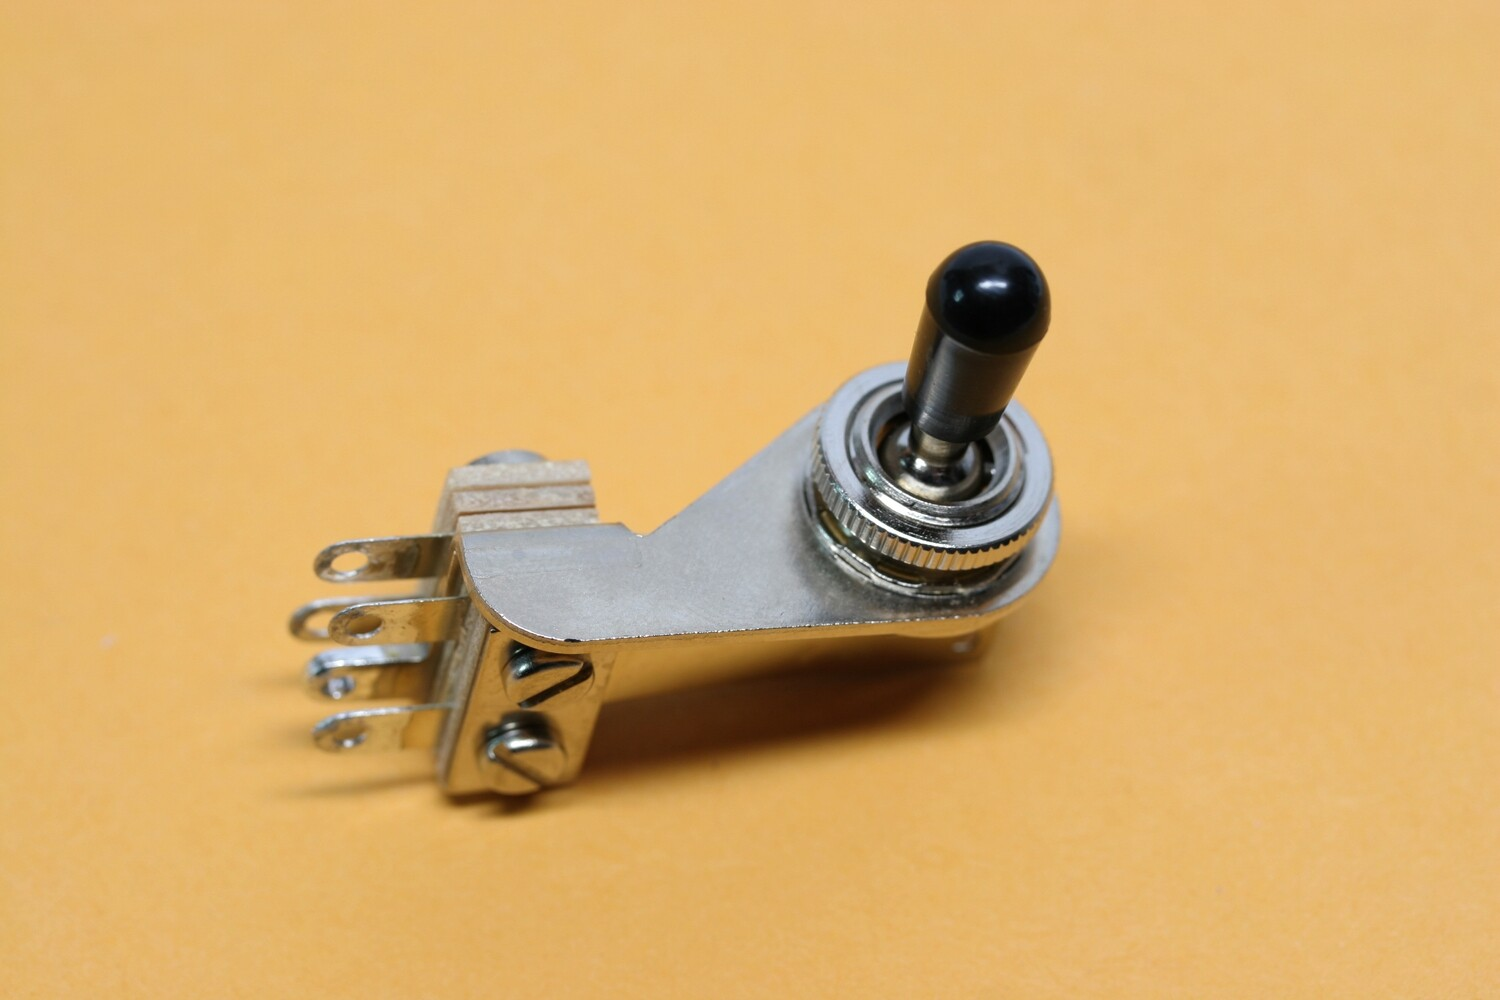 Switchcraft right angle toggle switch, pre-tinned at factory, with knurled nut & knob.